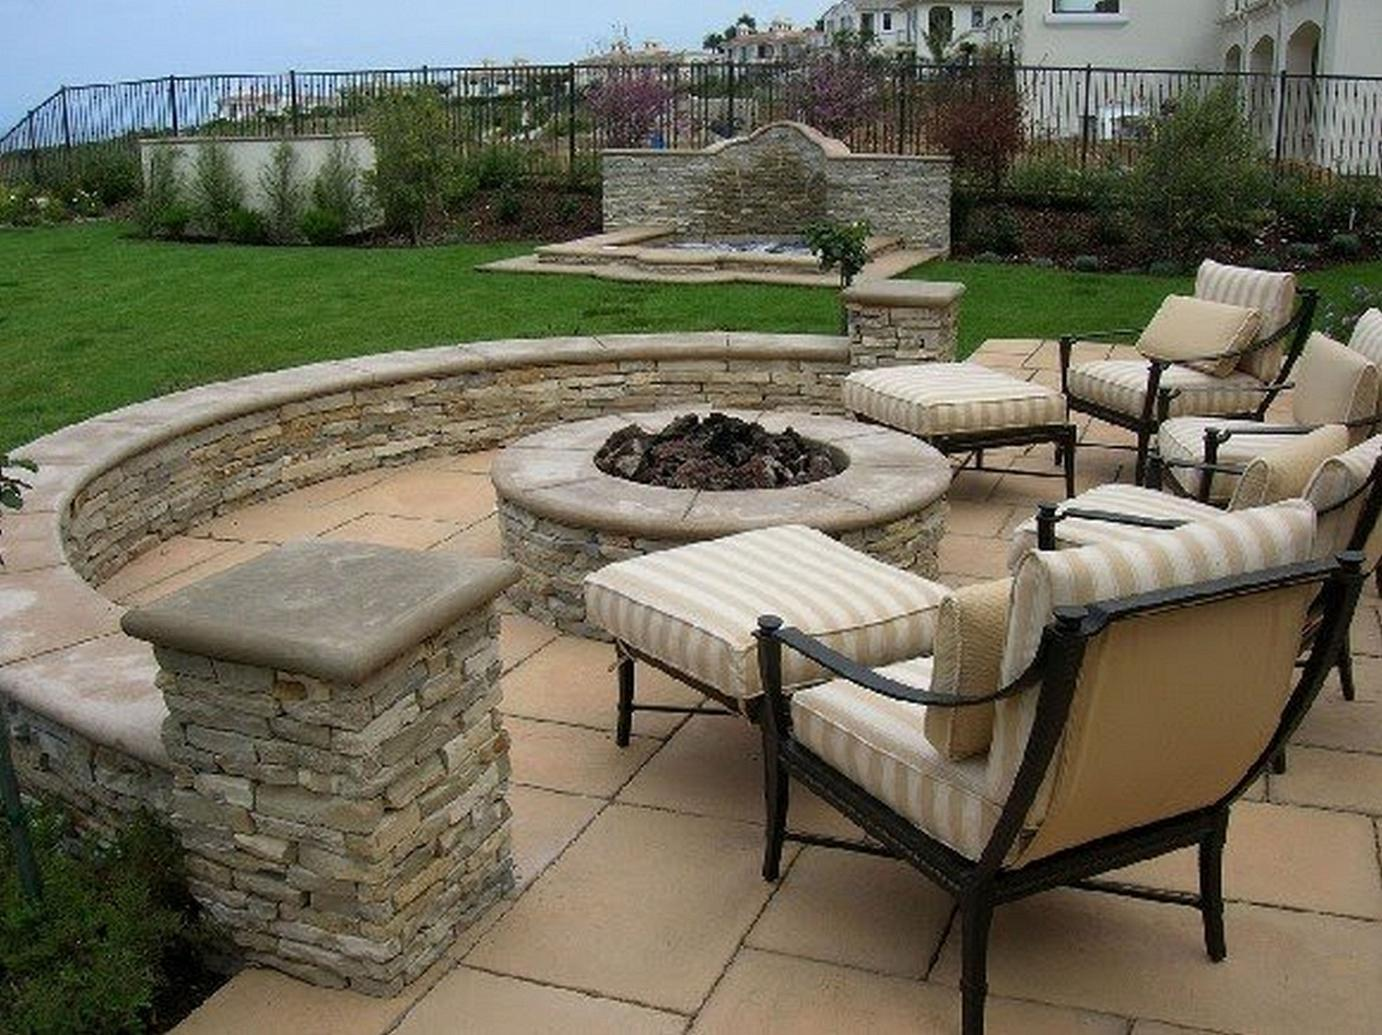 Backyard patio ideas for small spaces large and for Small patio design plans